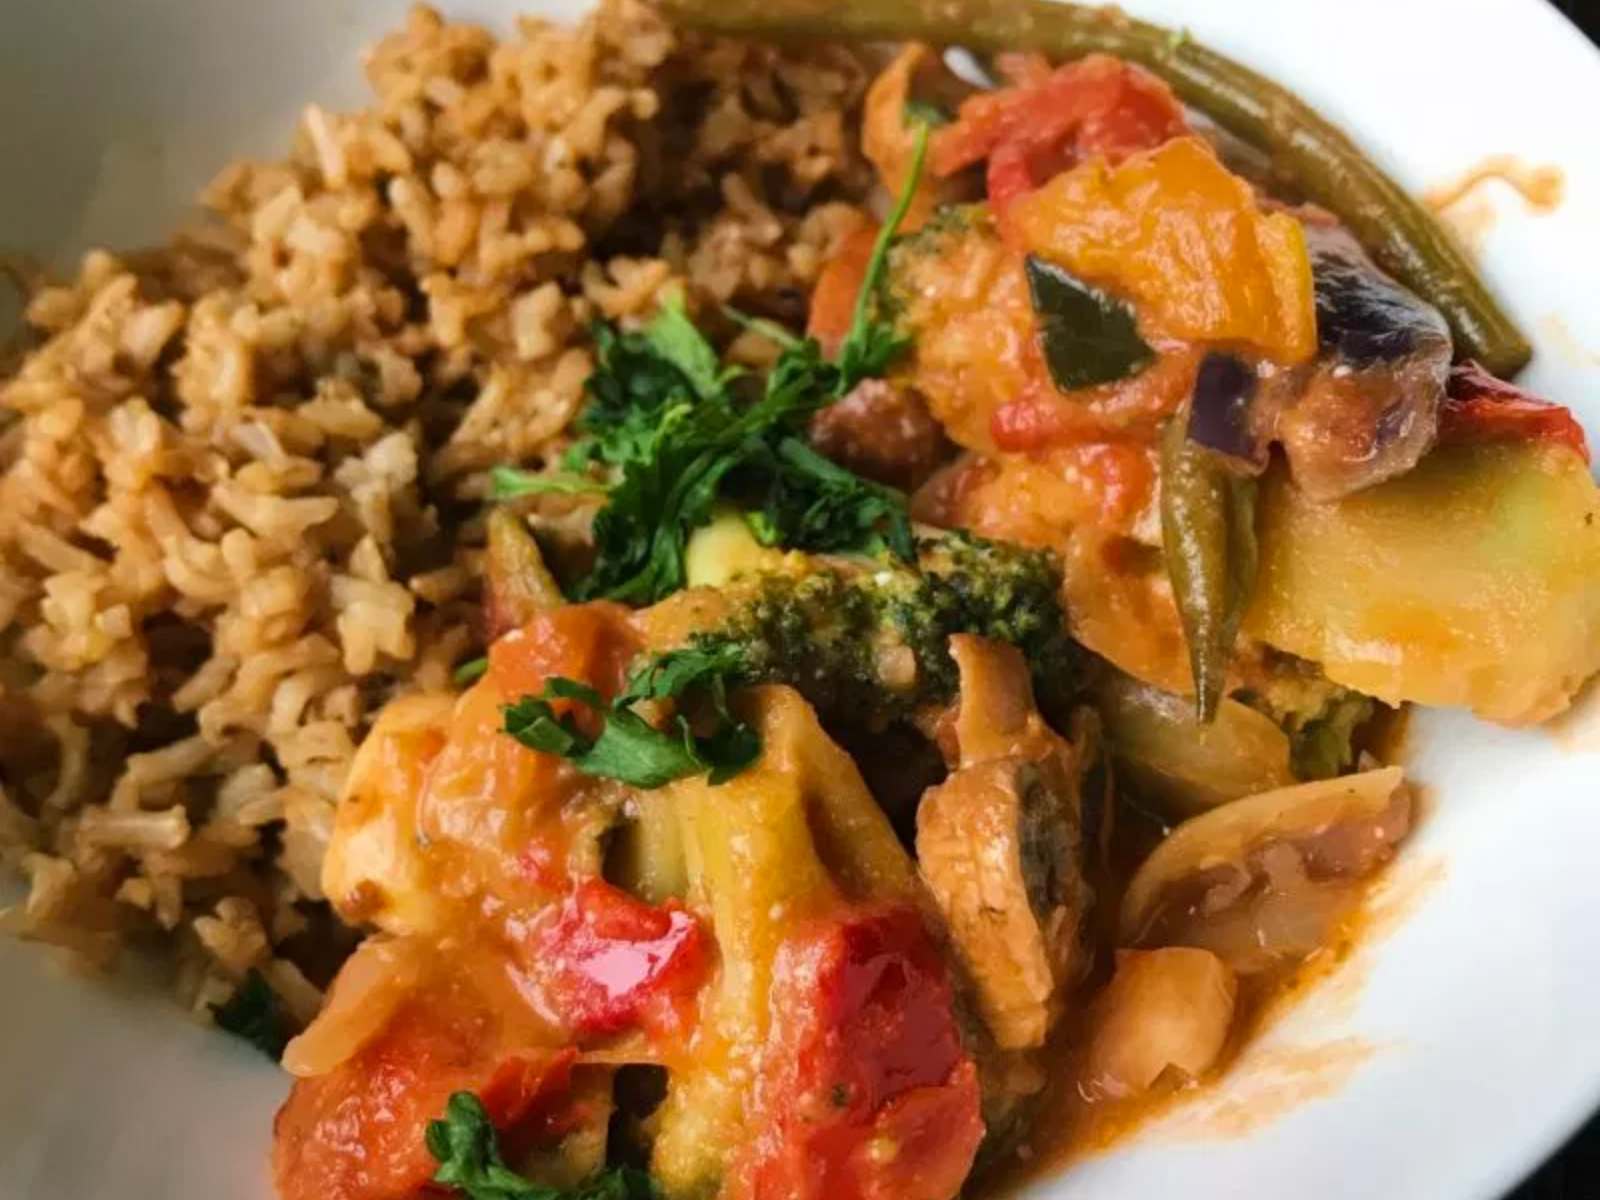 Vegan 'Chicken' Thai Red Curry With Fried Rice